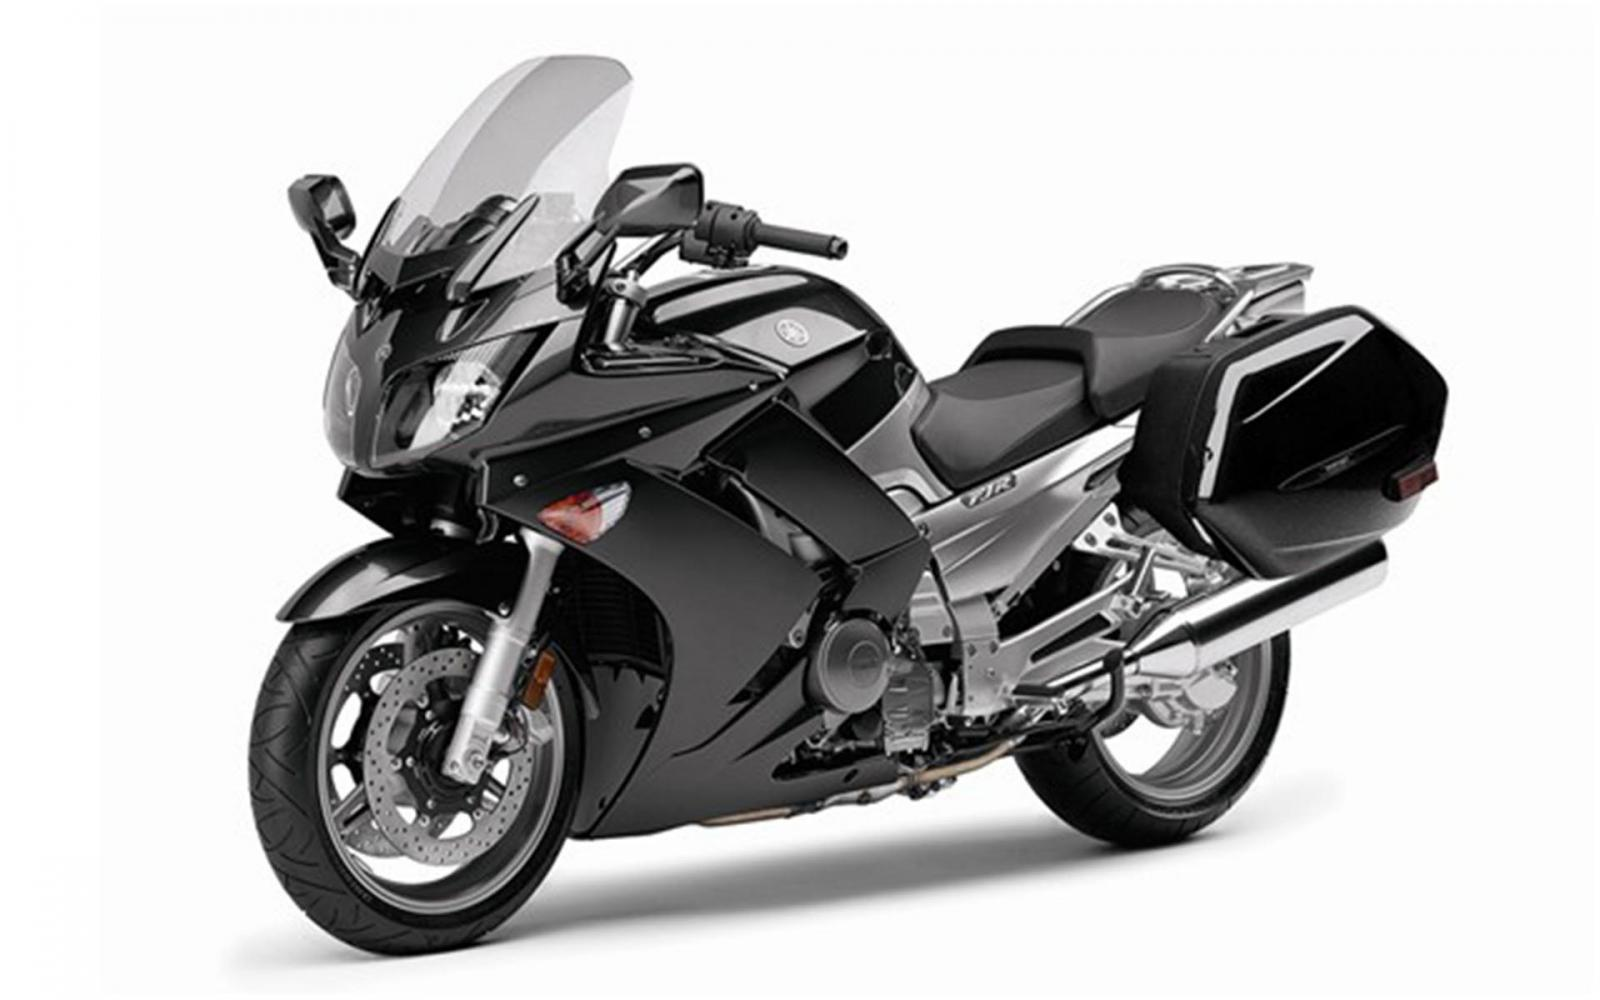 2013 yamaha fjr 1300 a moto zombdrive com. Black Bedroom Furniture Sets. Home Design Ideas